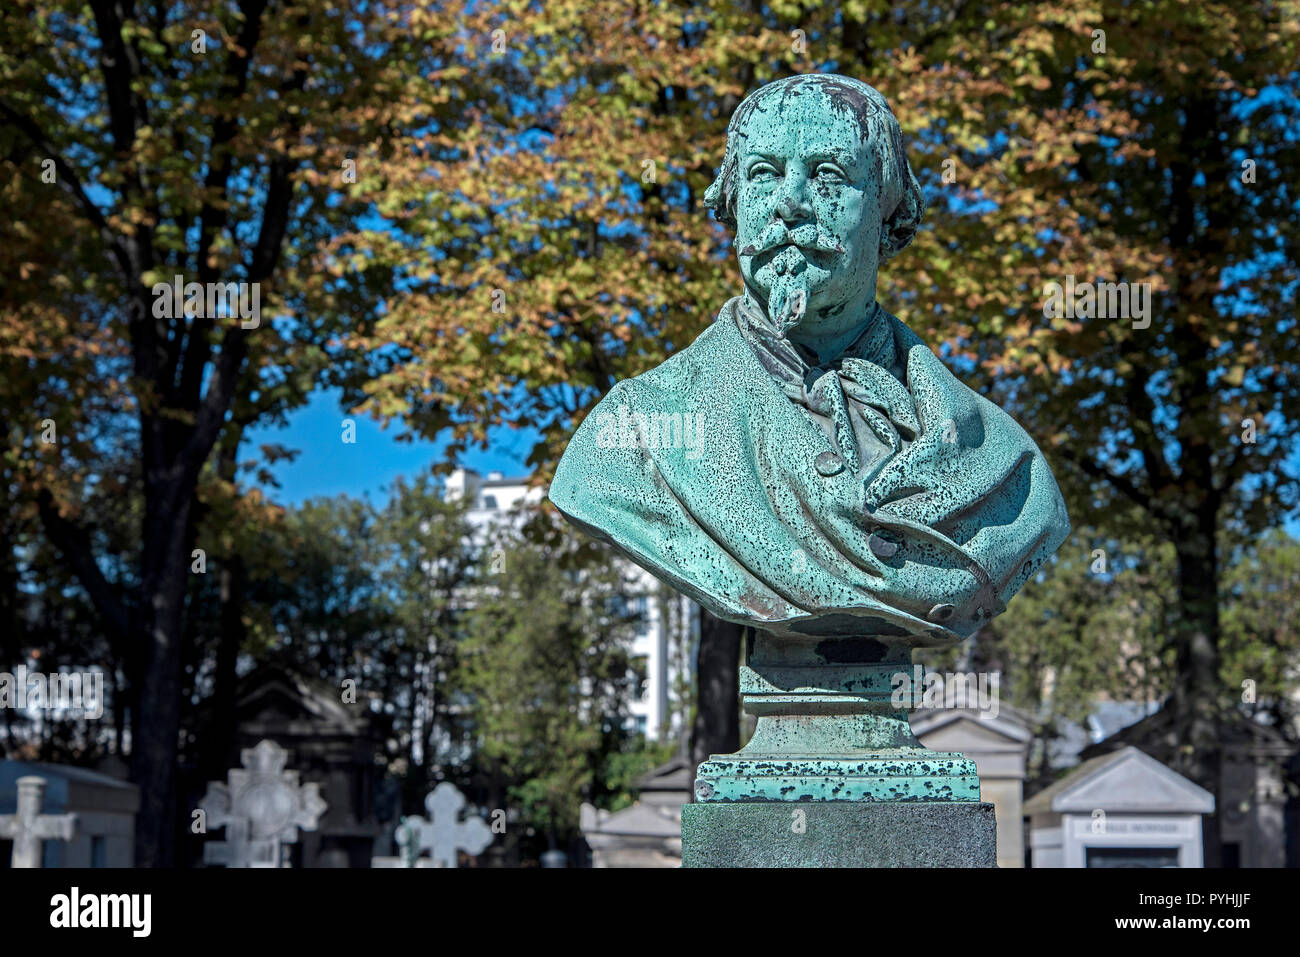 The bust of Charles Geoffroy (1819-1882), 19th century print engraver, in Passy Cemerery, Paris, France. - Stock Image